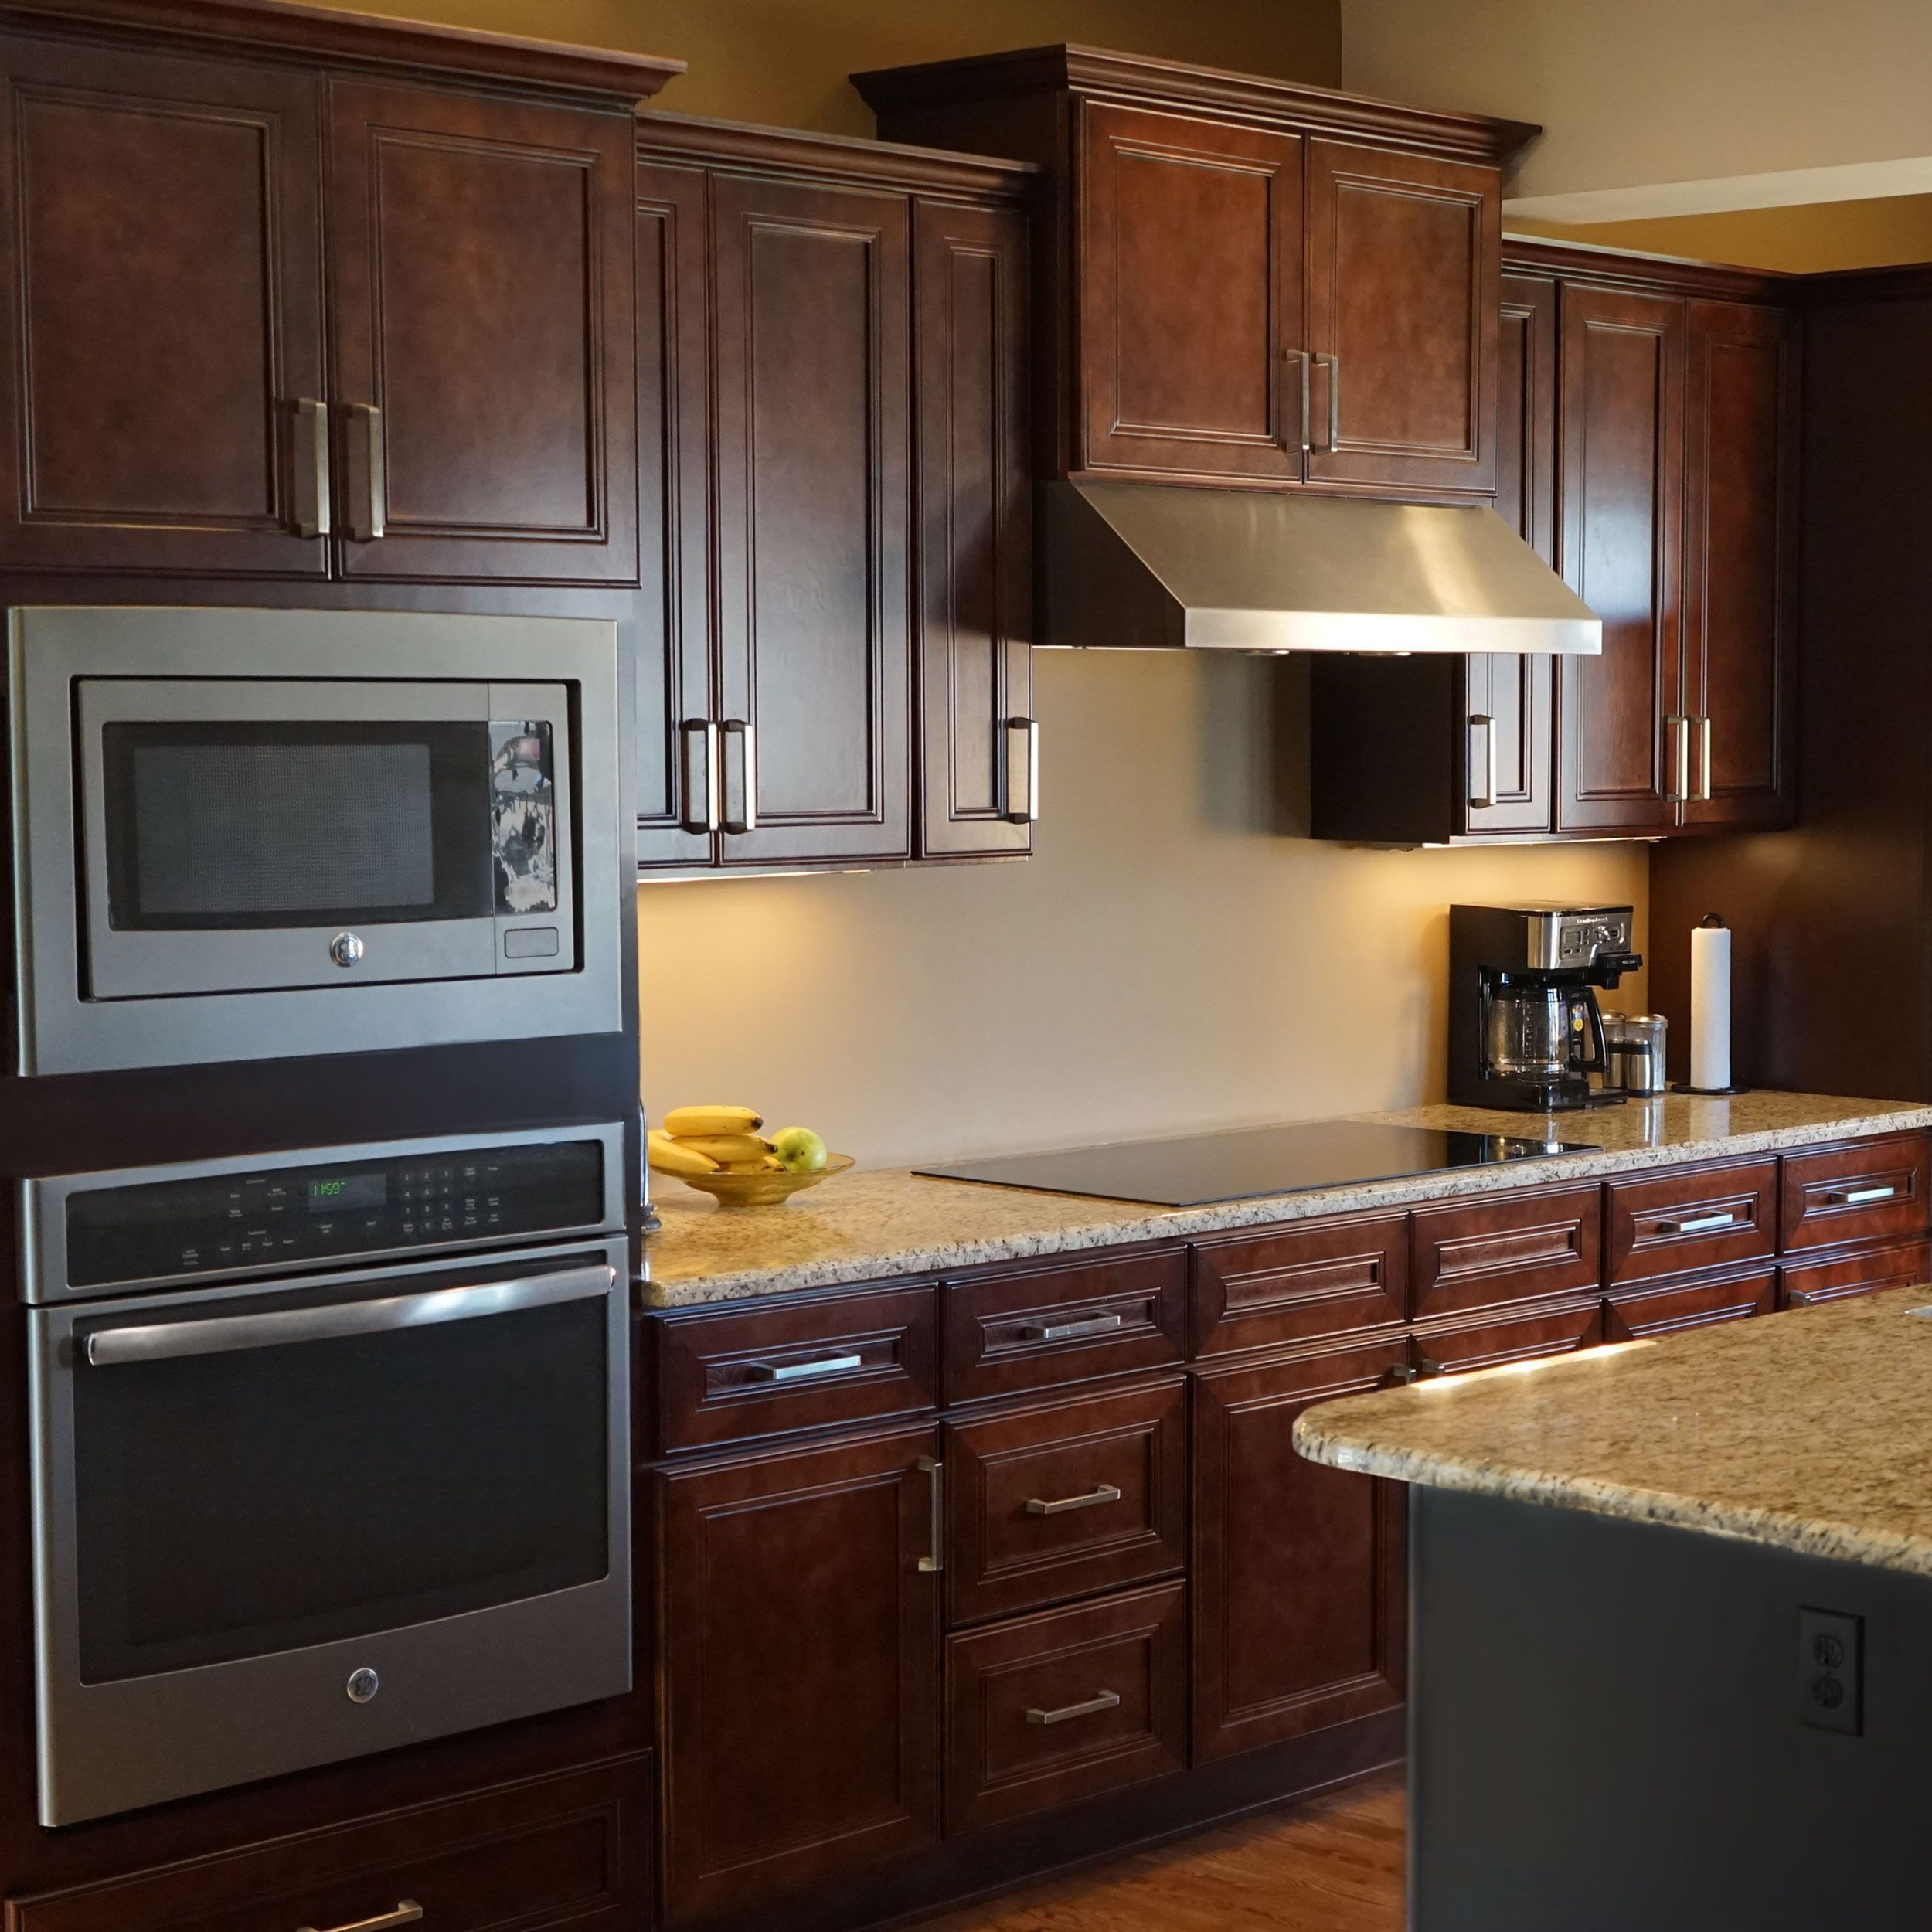 Kitchen Countertop Ideas Searching for a failure of the